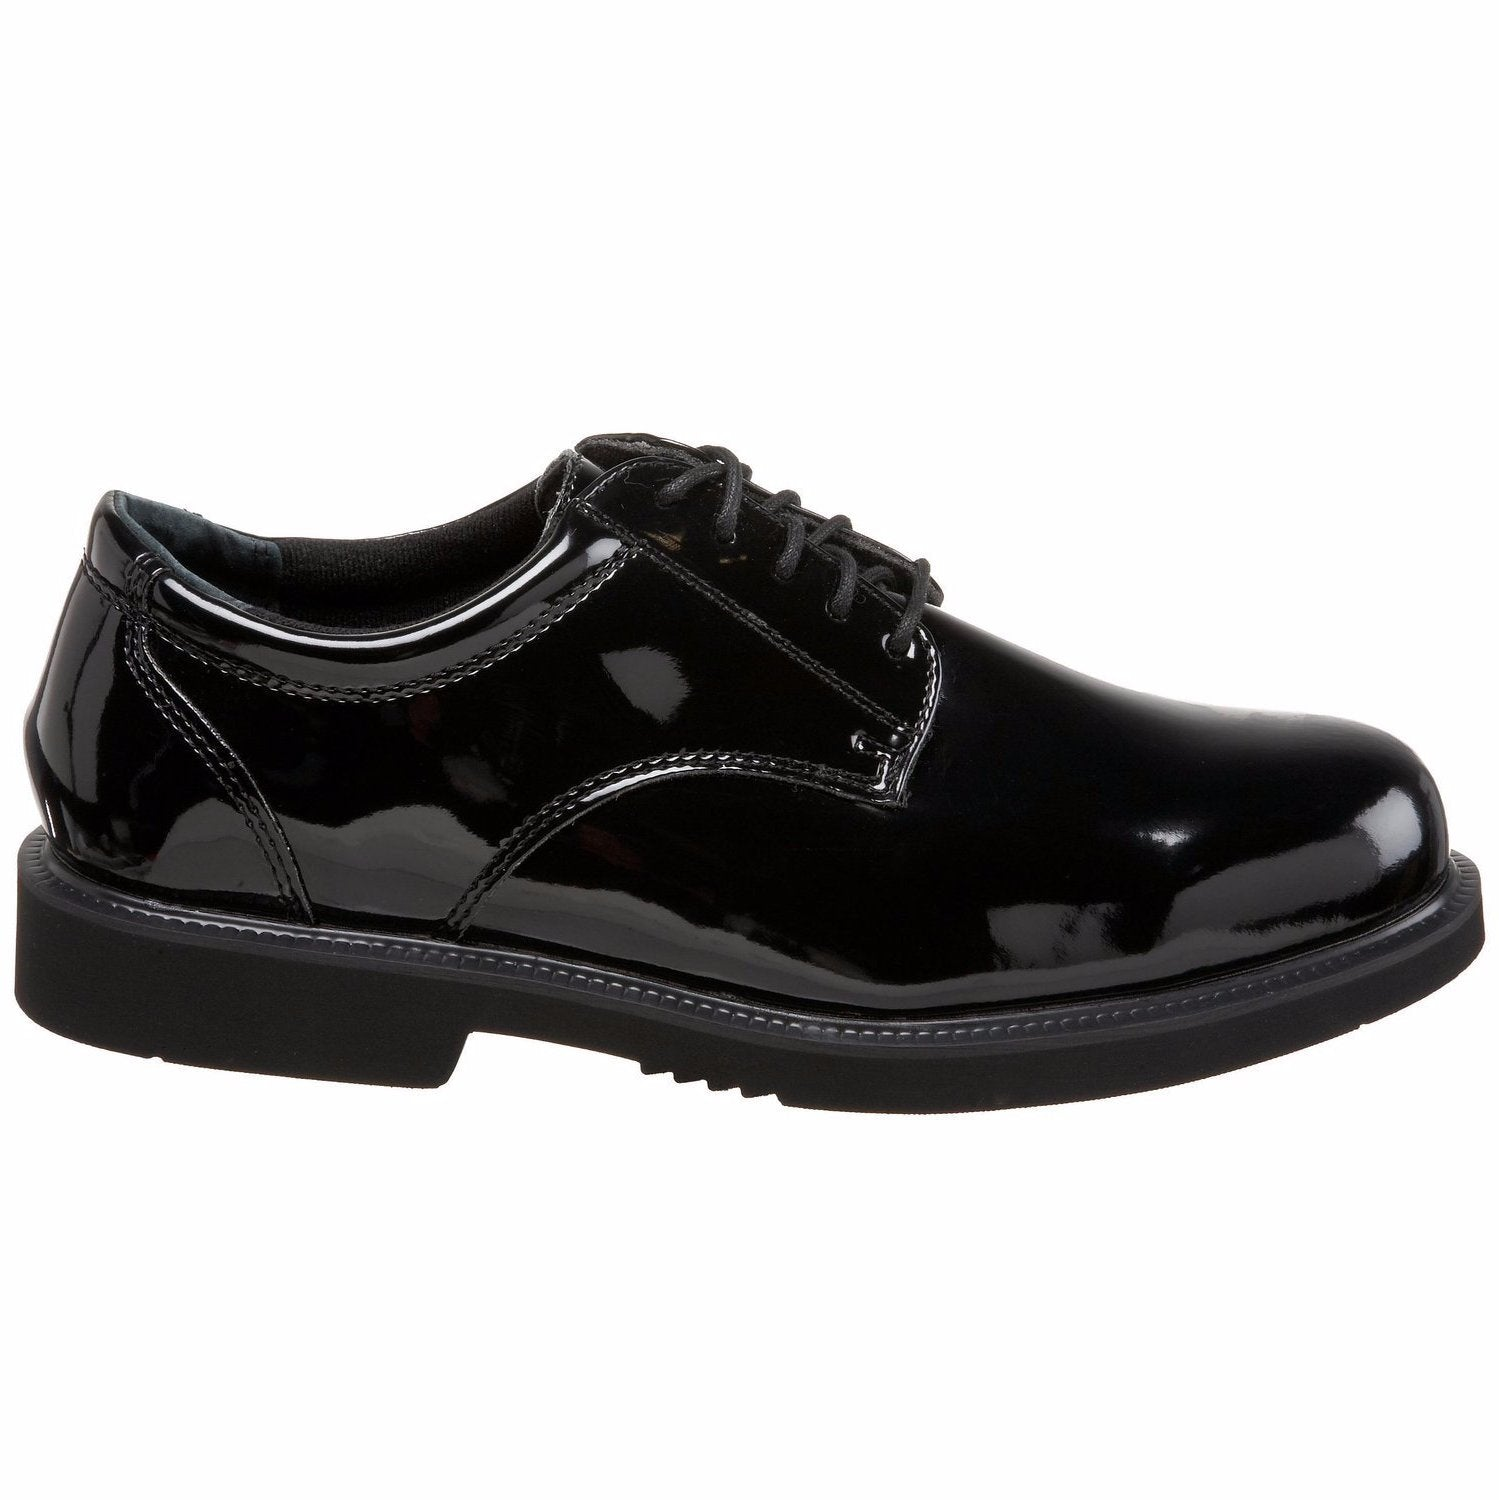 Academy Oxford - Black Patent